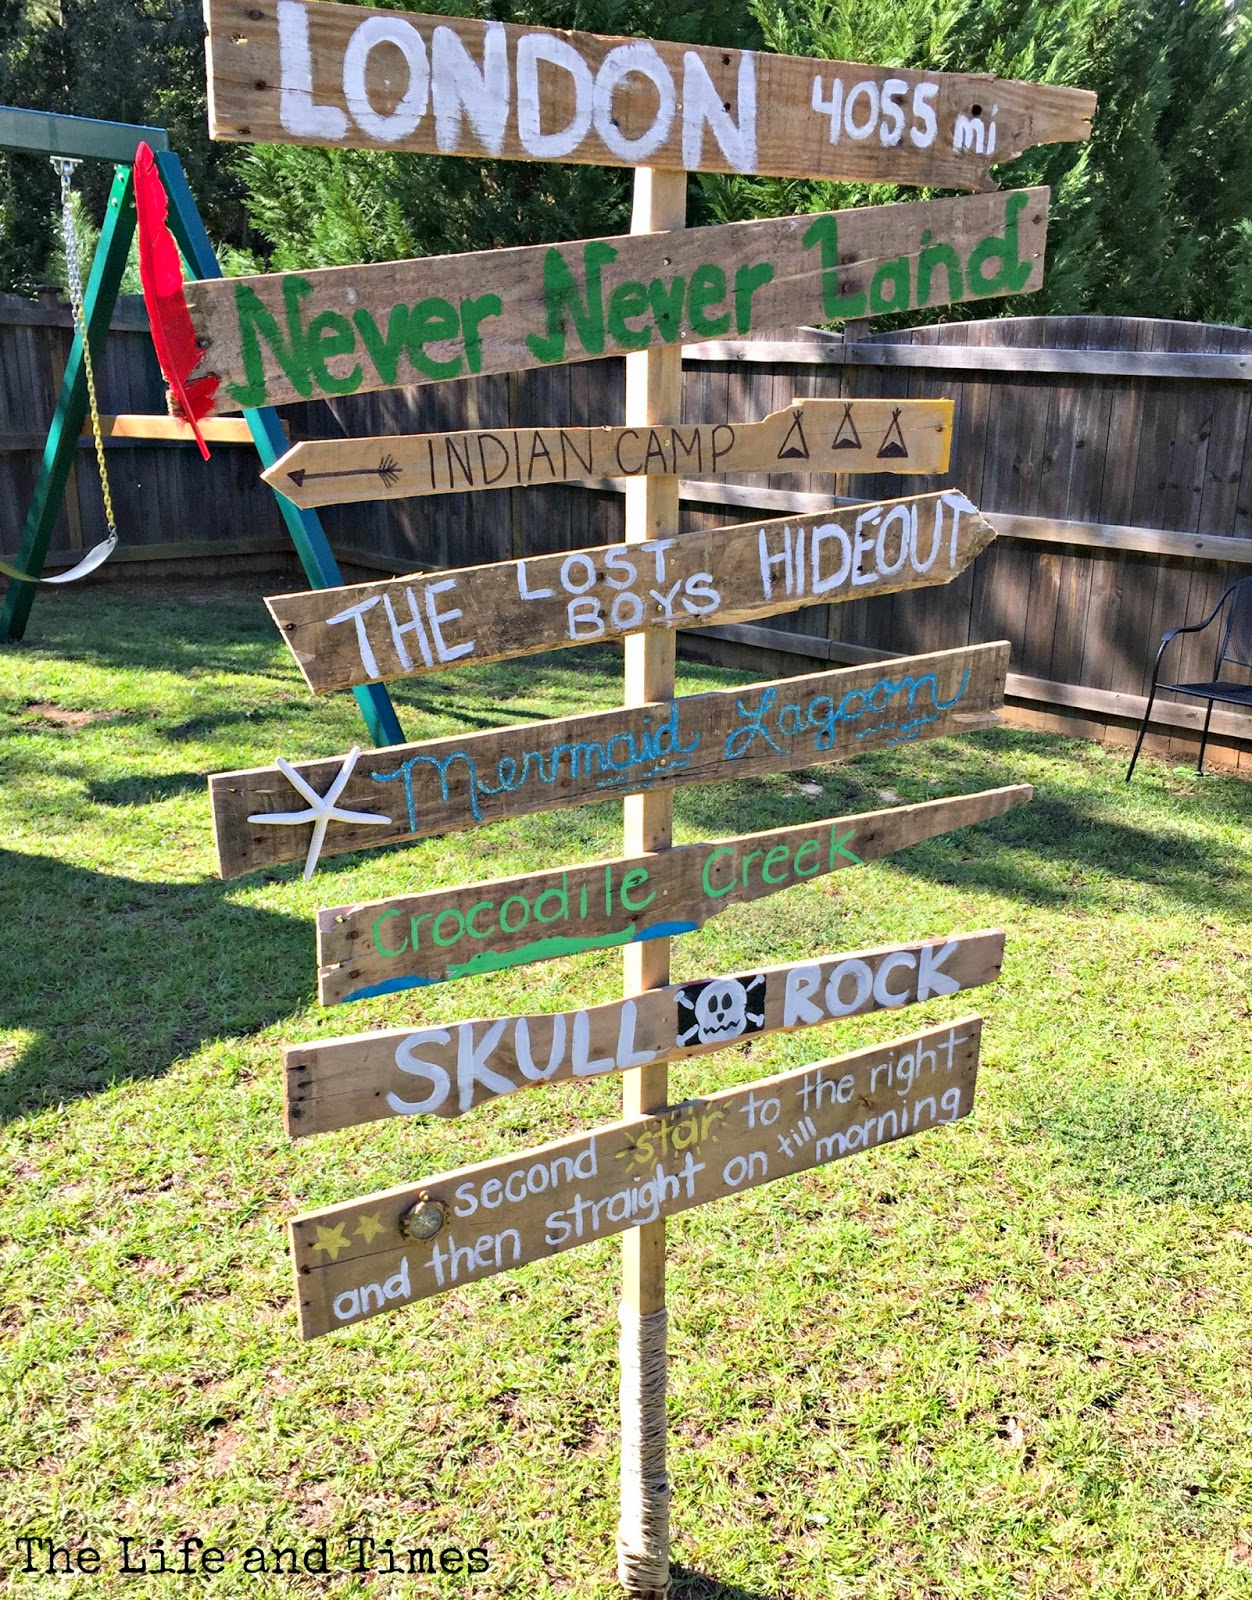 Come take a trip to Neverland with this fun Peter Pan inspired birthday party!